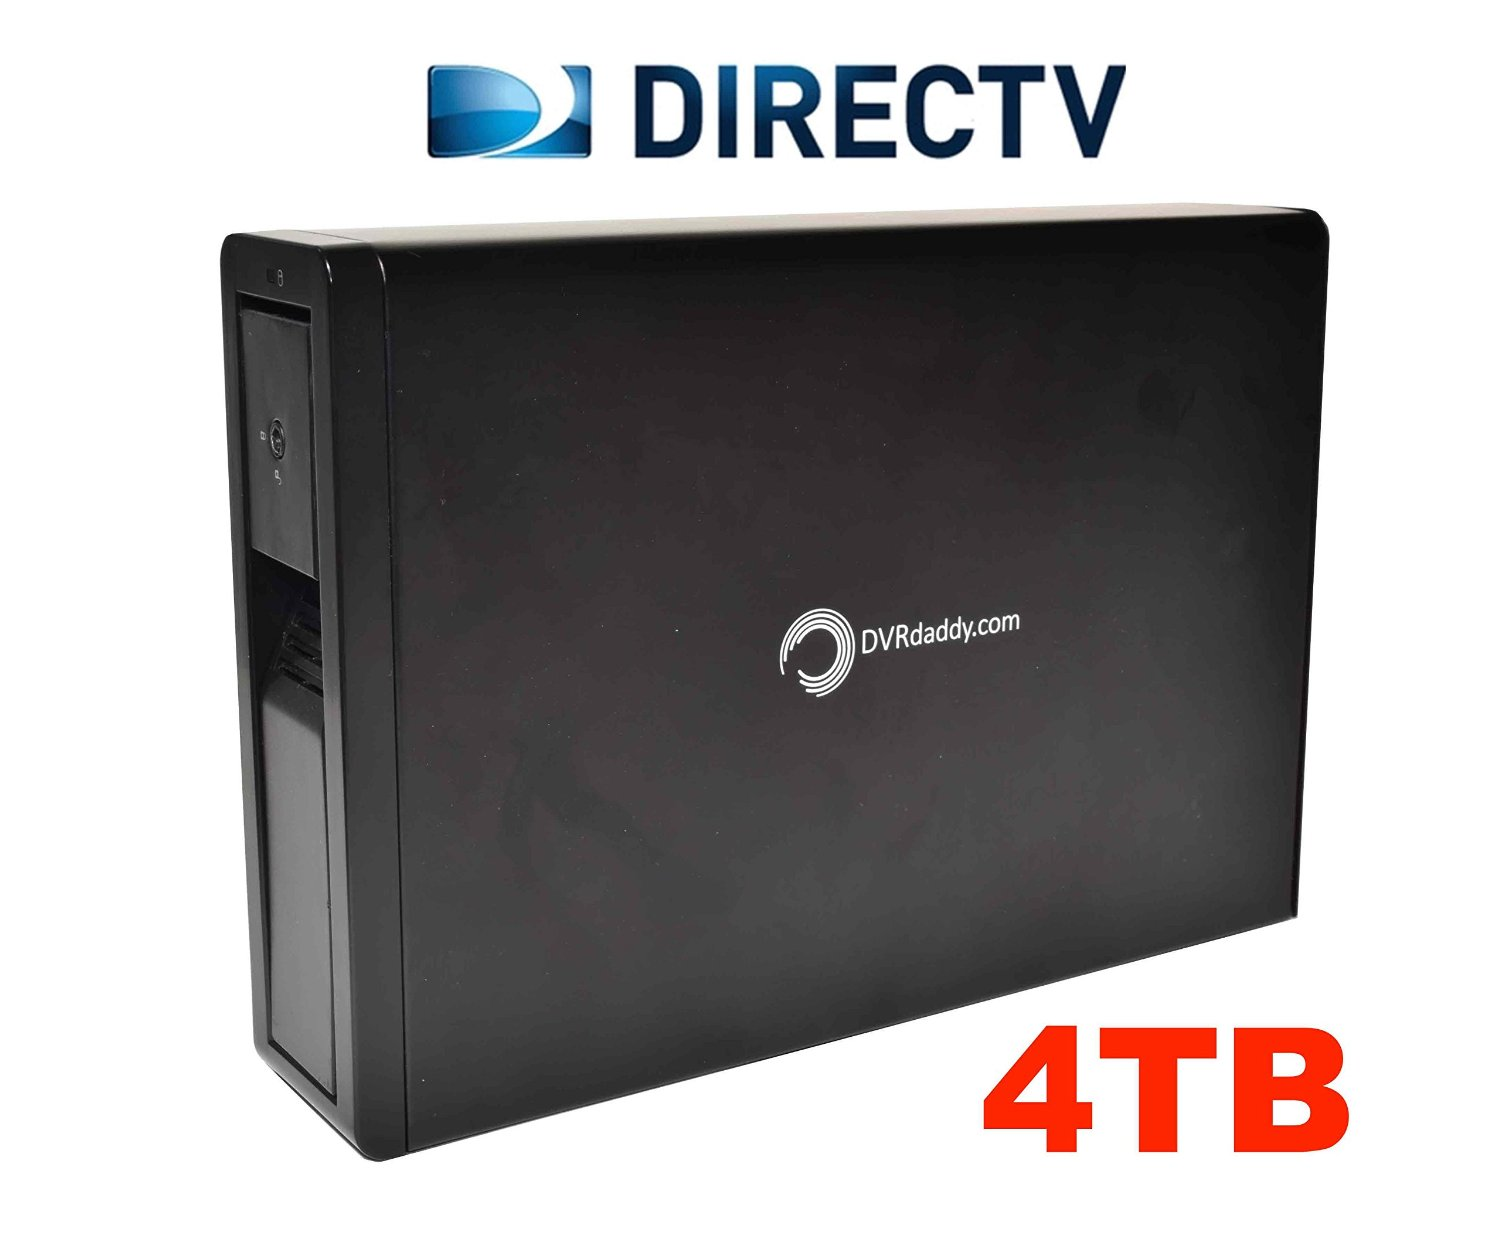 4TB External DVR Hard Drive Expander For DirecTV HR34, HR44 and HR54 Genie DVR. +4,000 Hours Recording Capacity and Free Shipping!